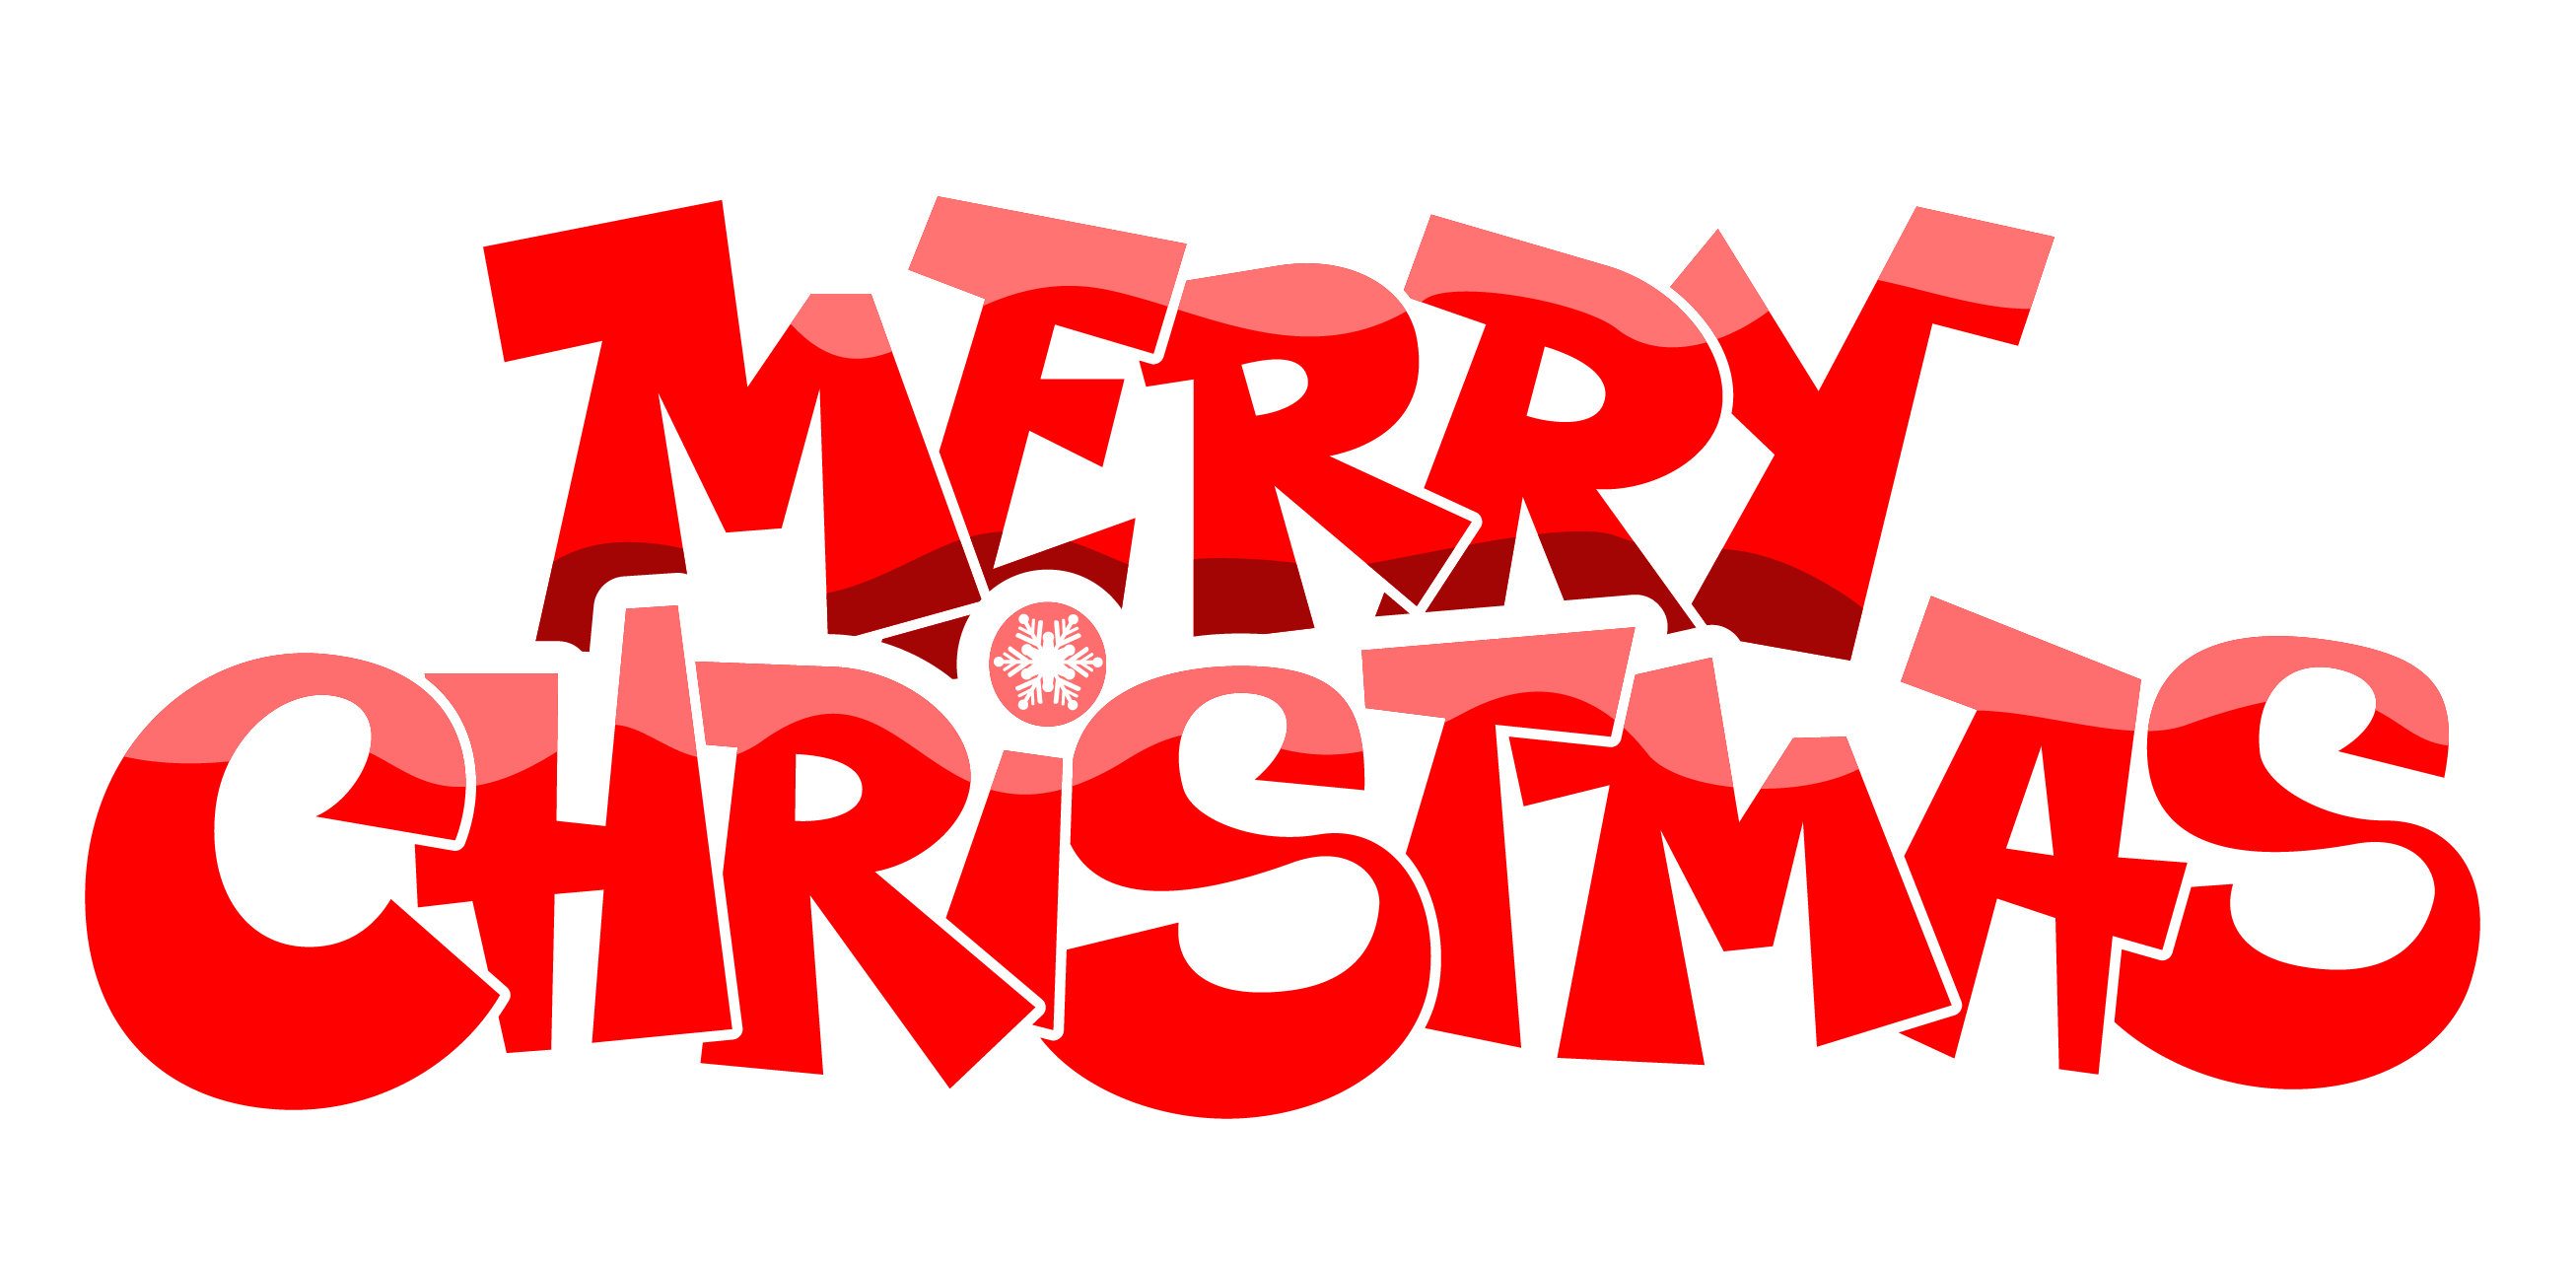 Merry Christmas Text Png image #27740